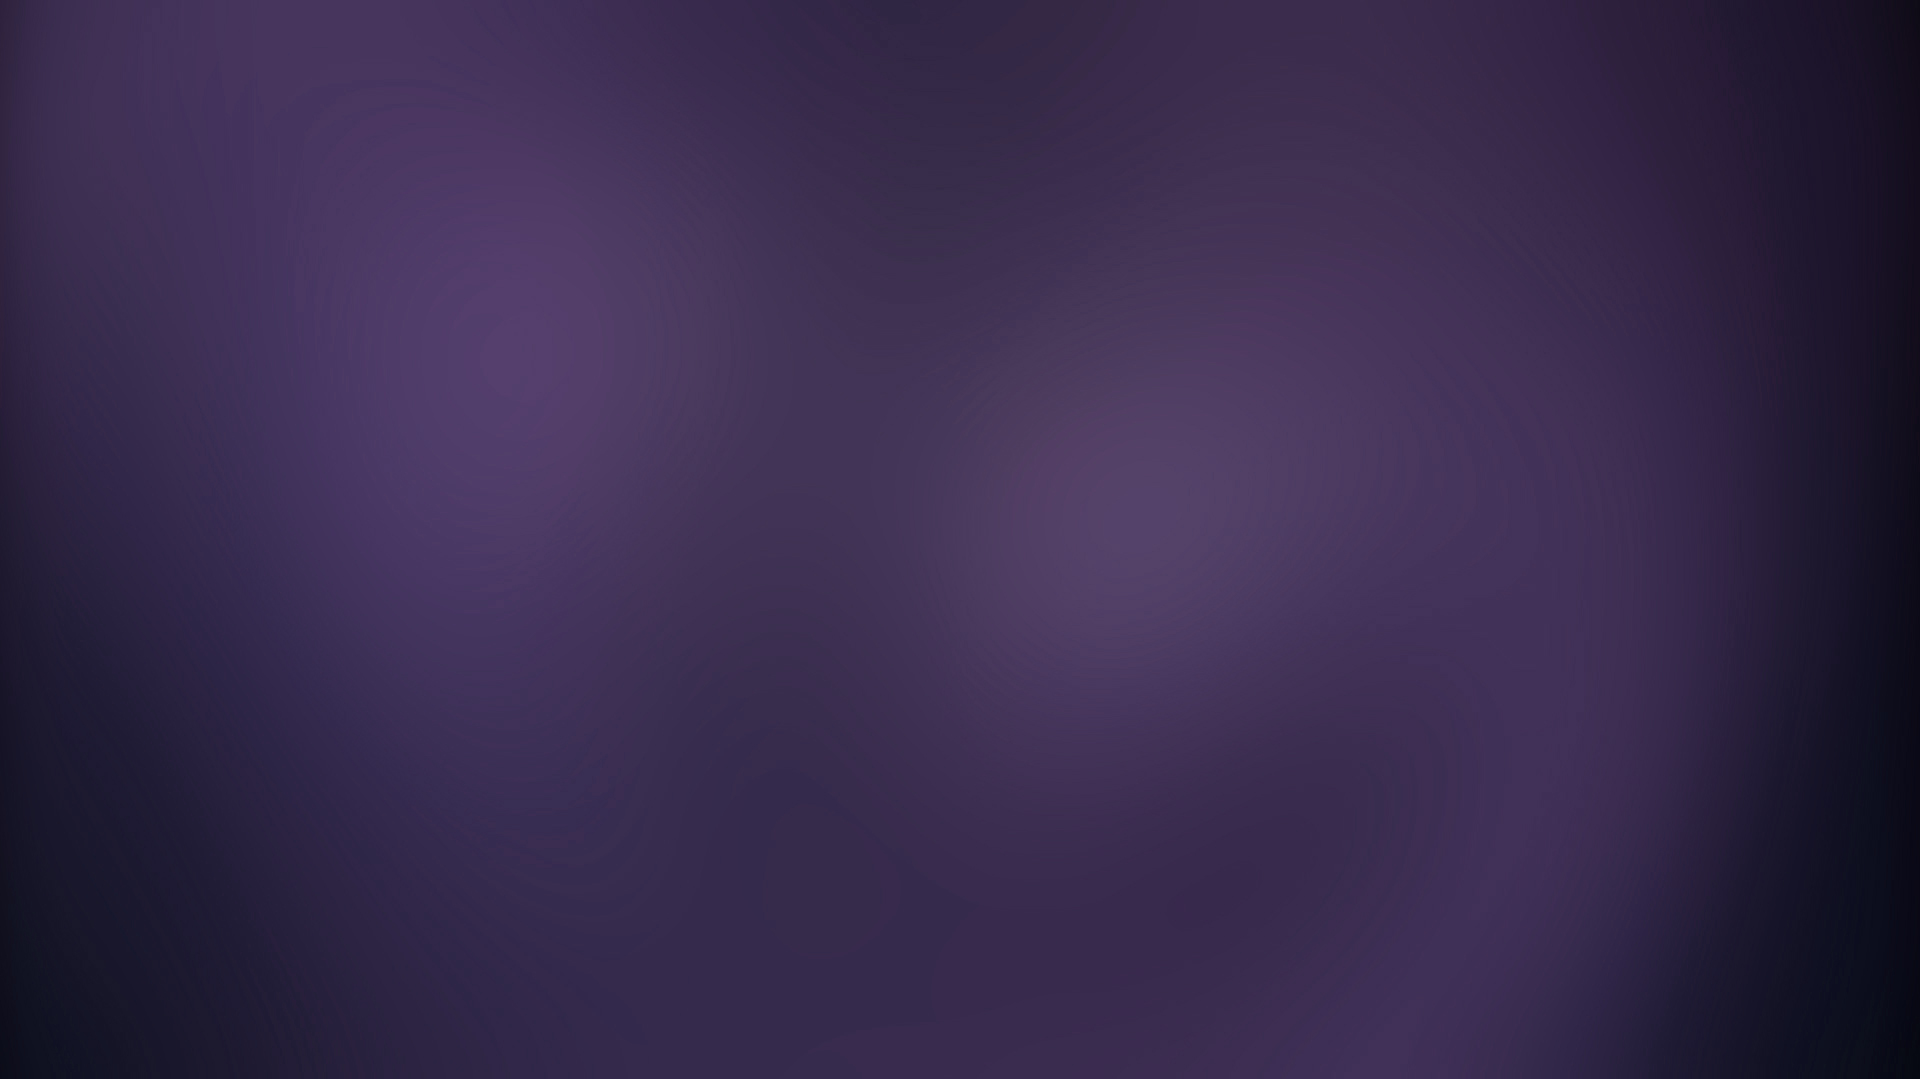 purple Textures gaussian blur HD Wallpaper